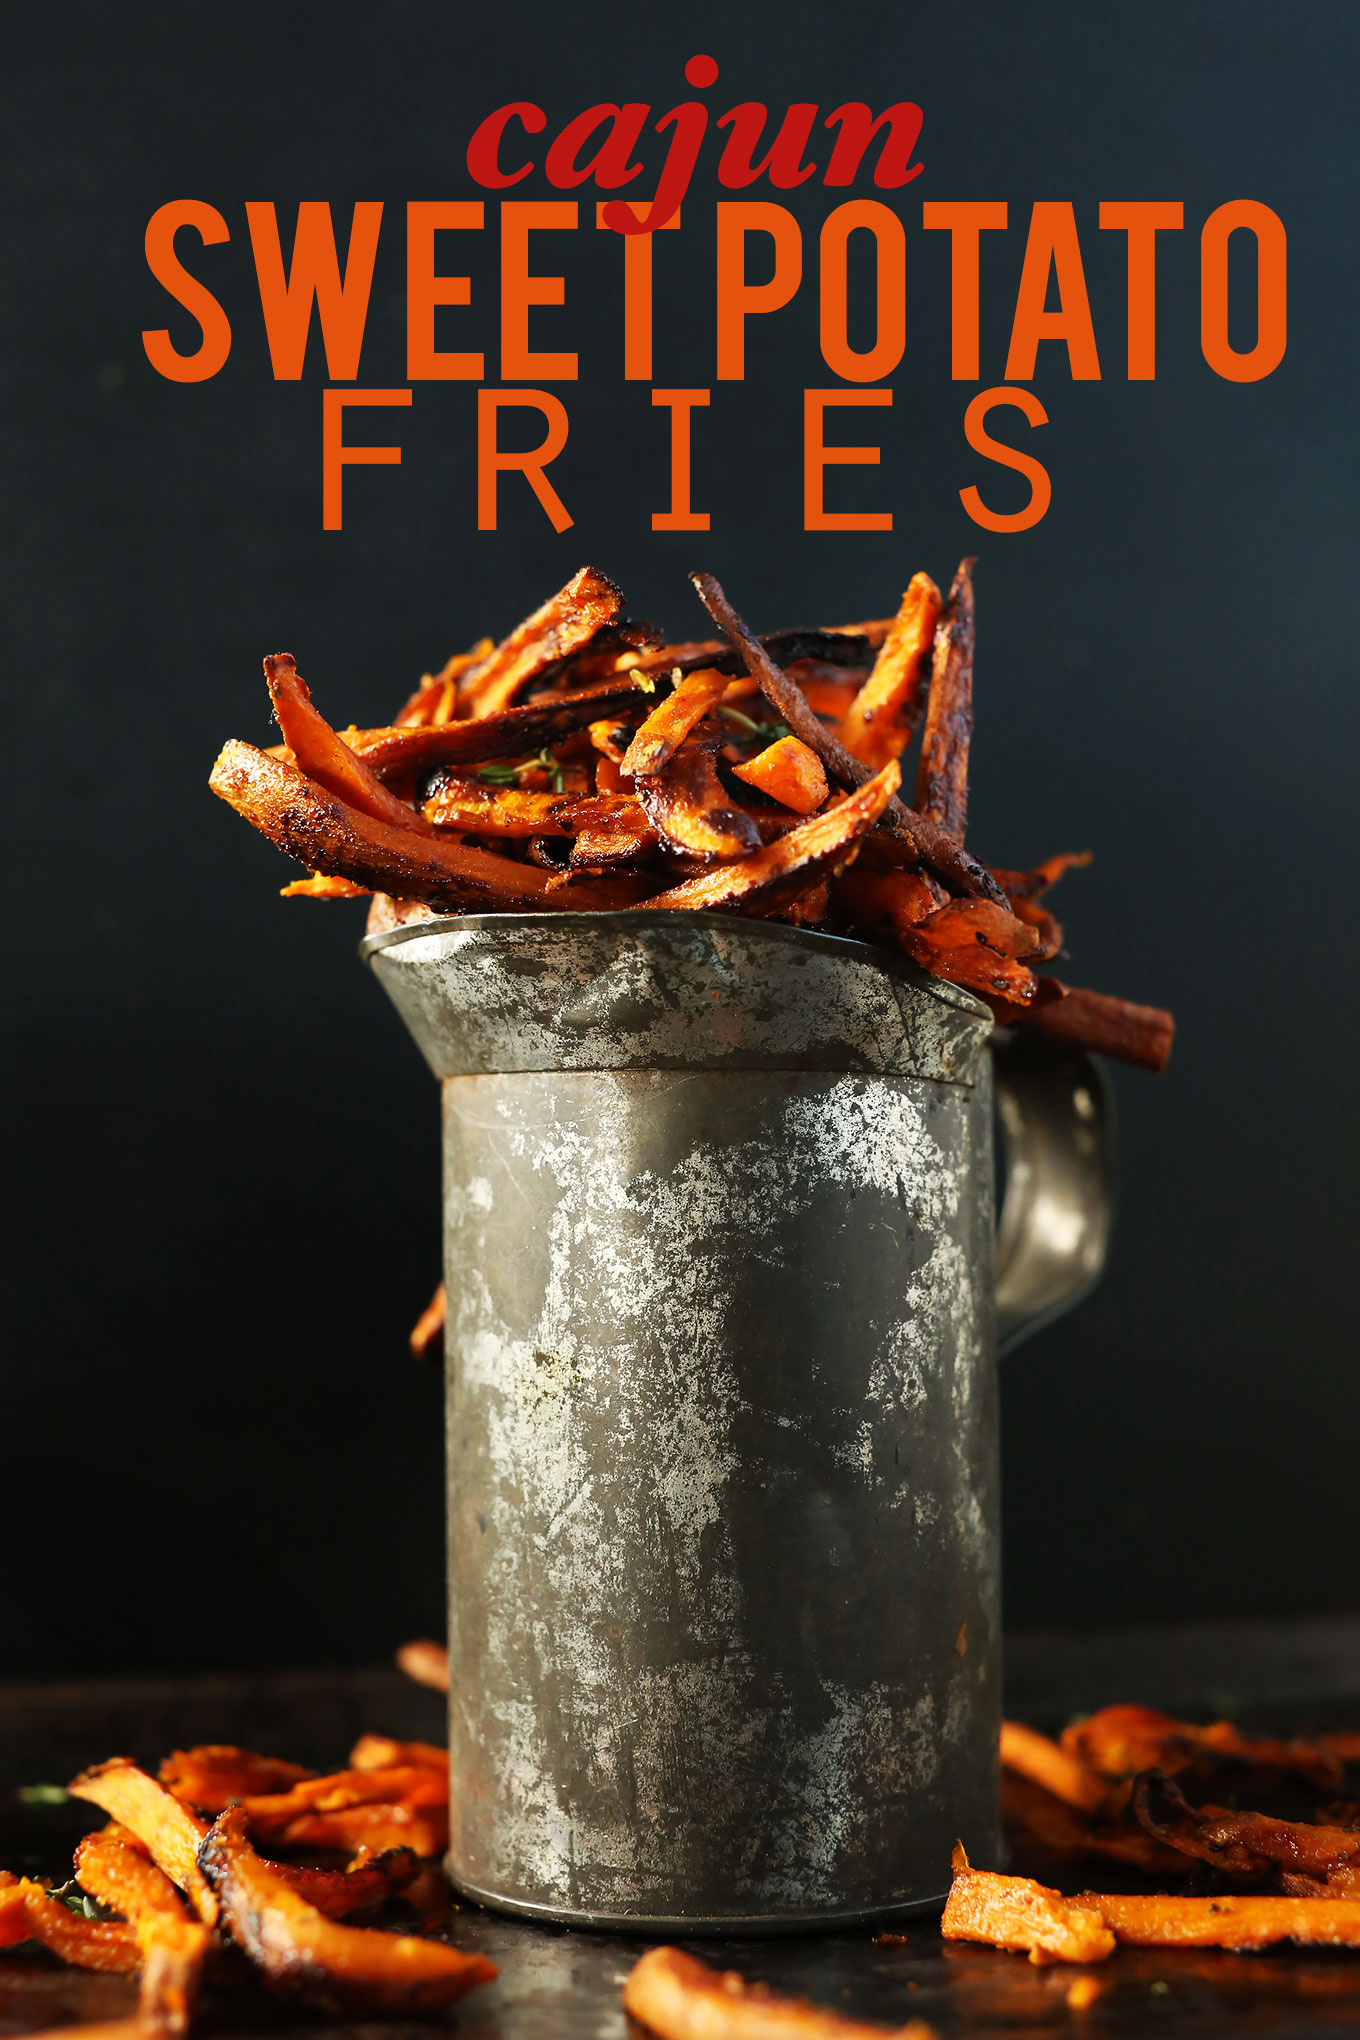 Metal jug filled with our Cajun Baked Sweet Potato Fries recipe